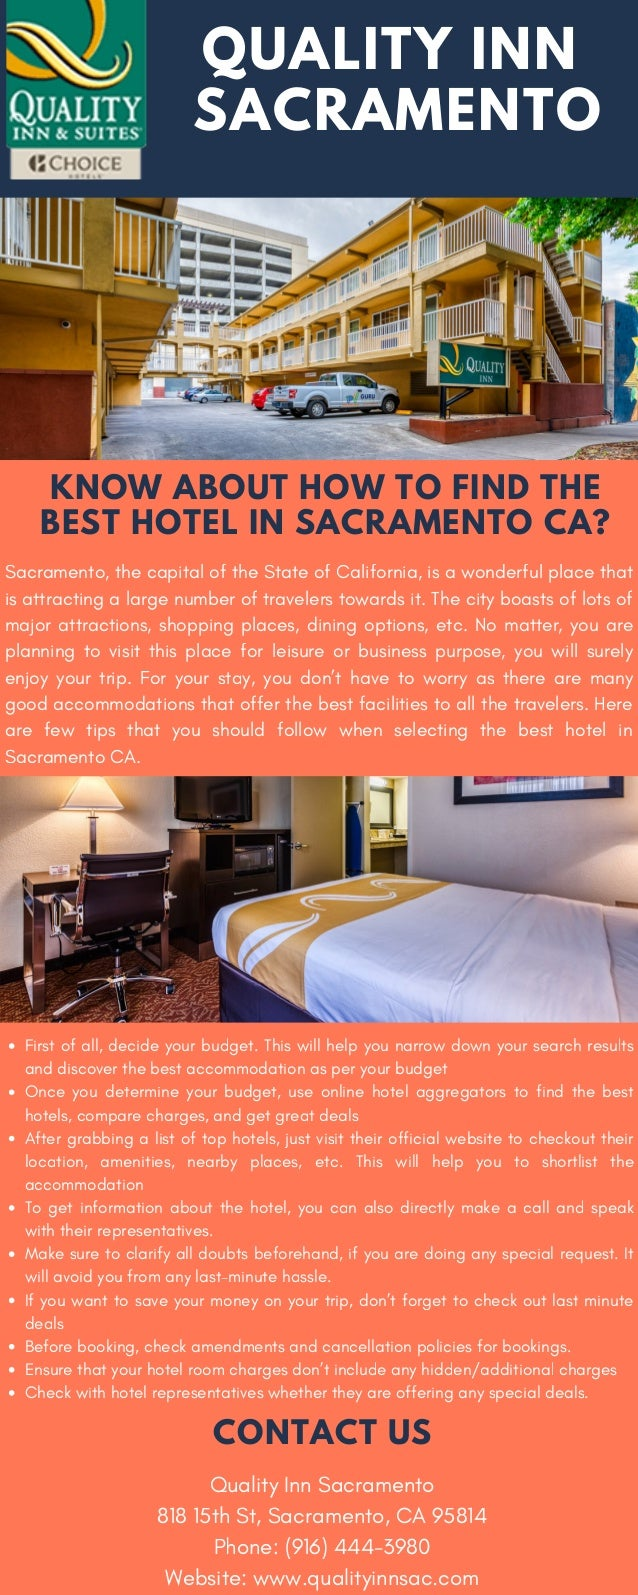 Know about how to find the best hotel in